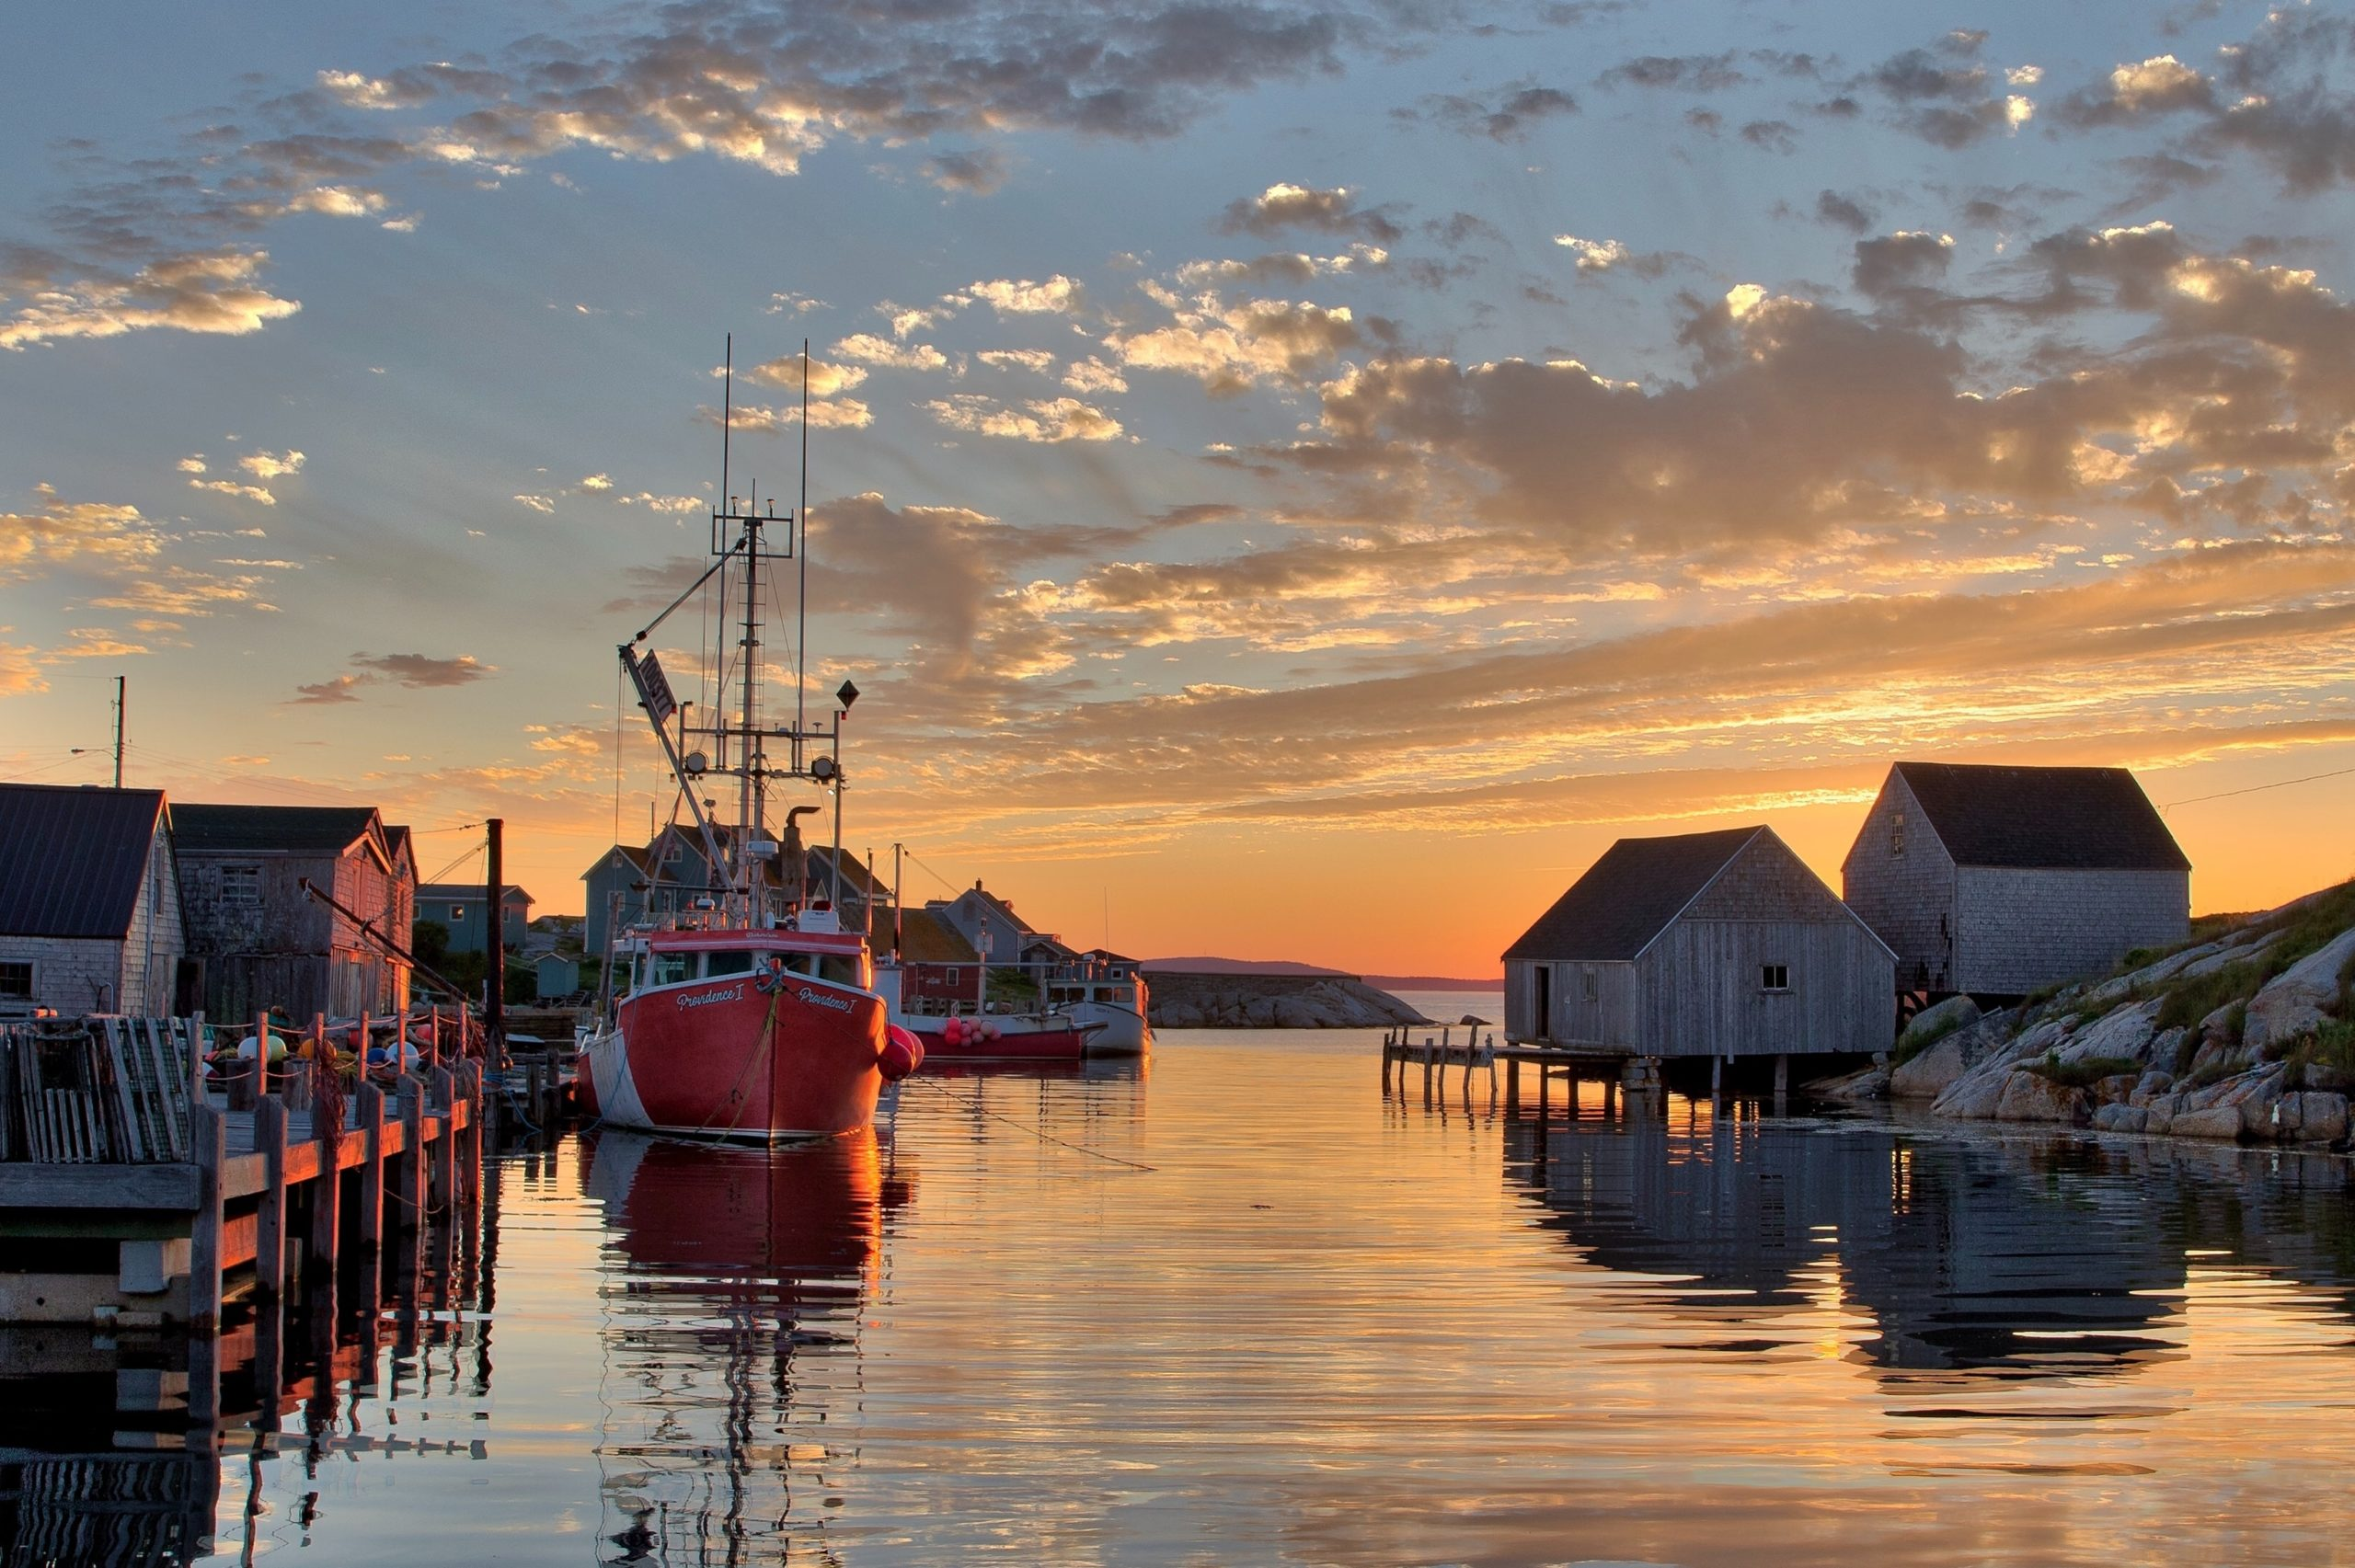 Nova Scotia: The cost of living, health care & fishing rights